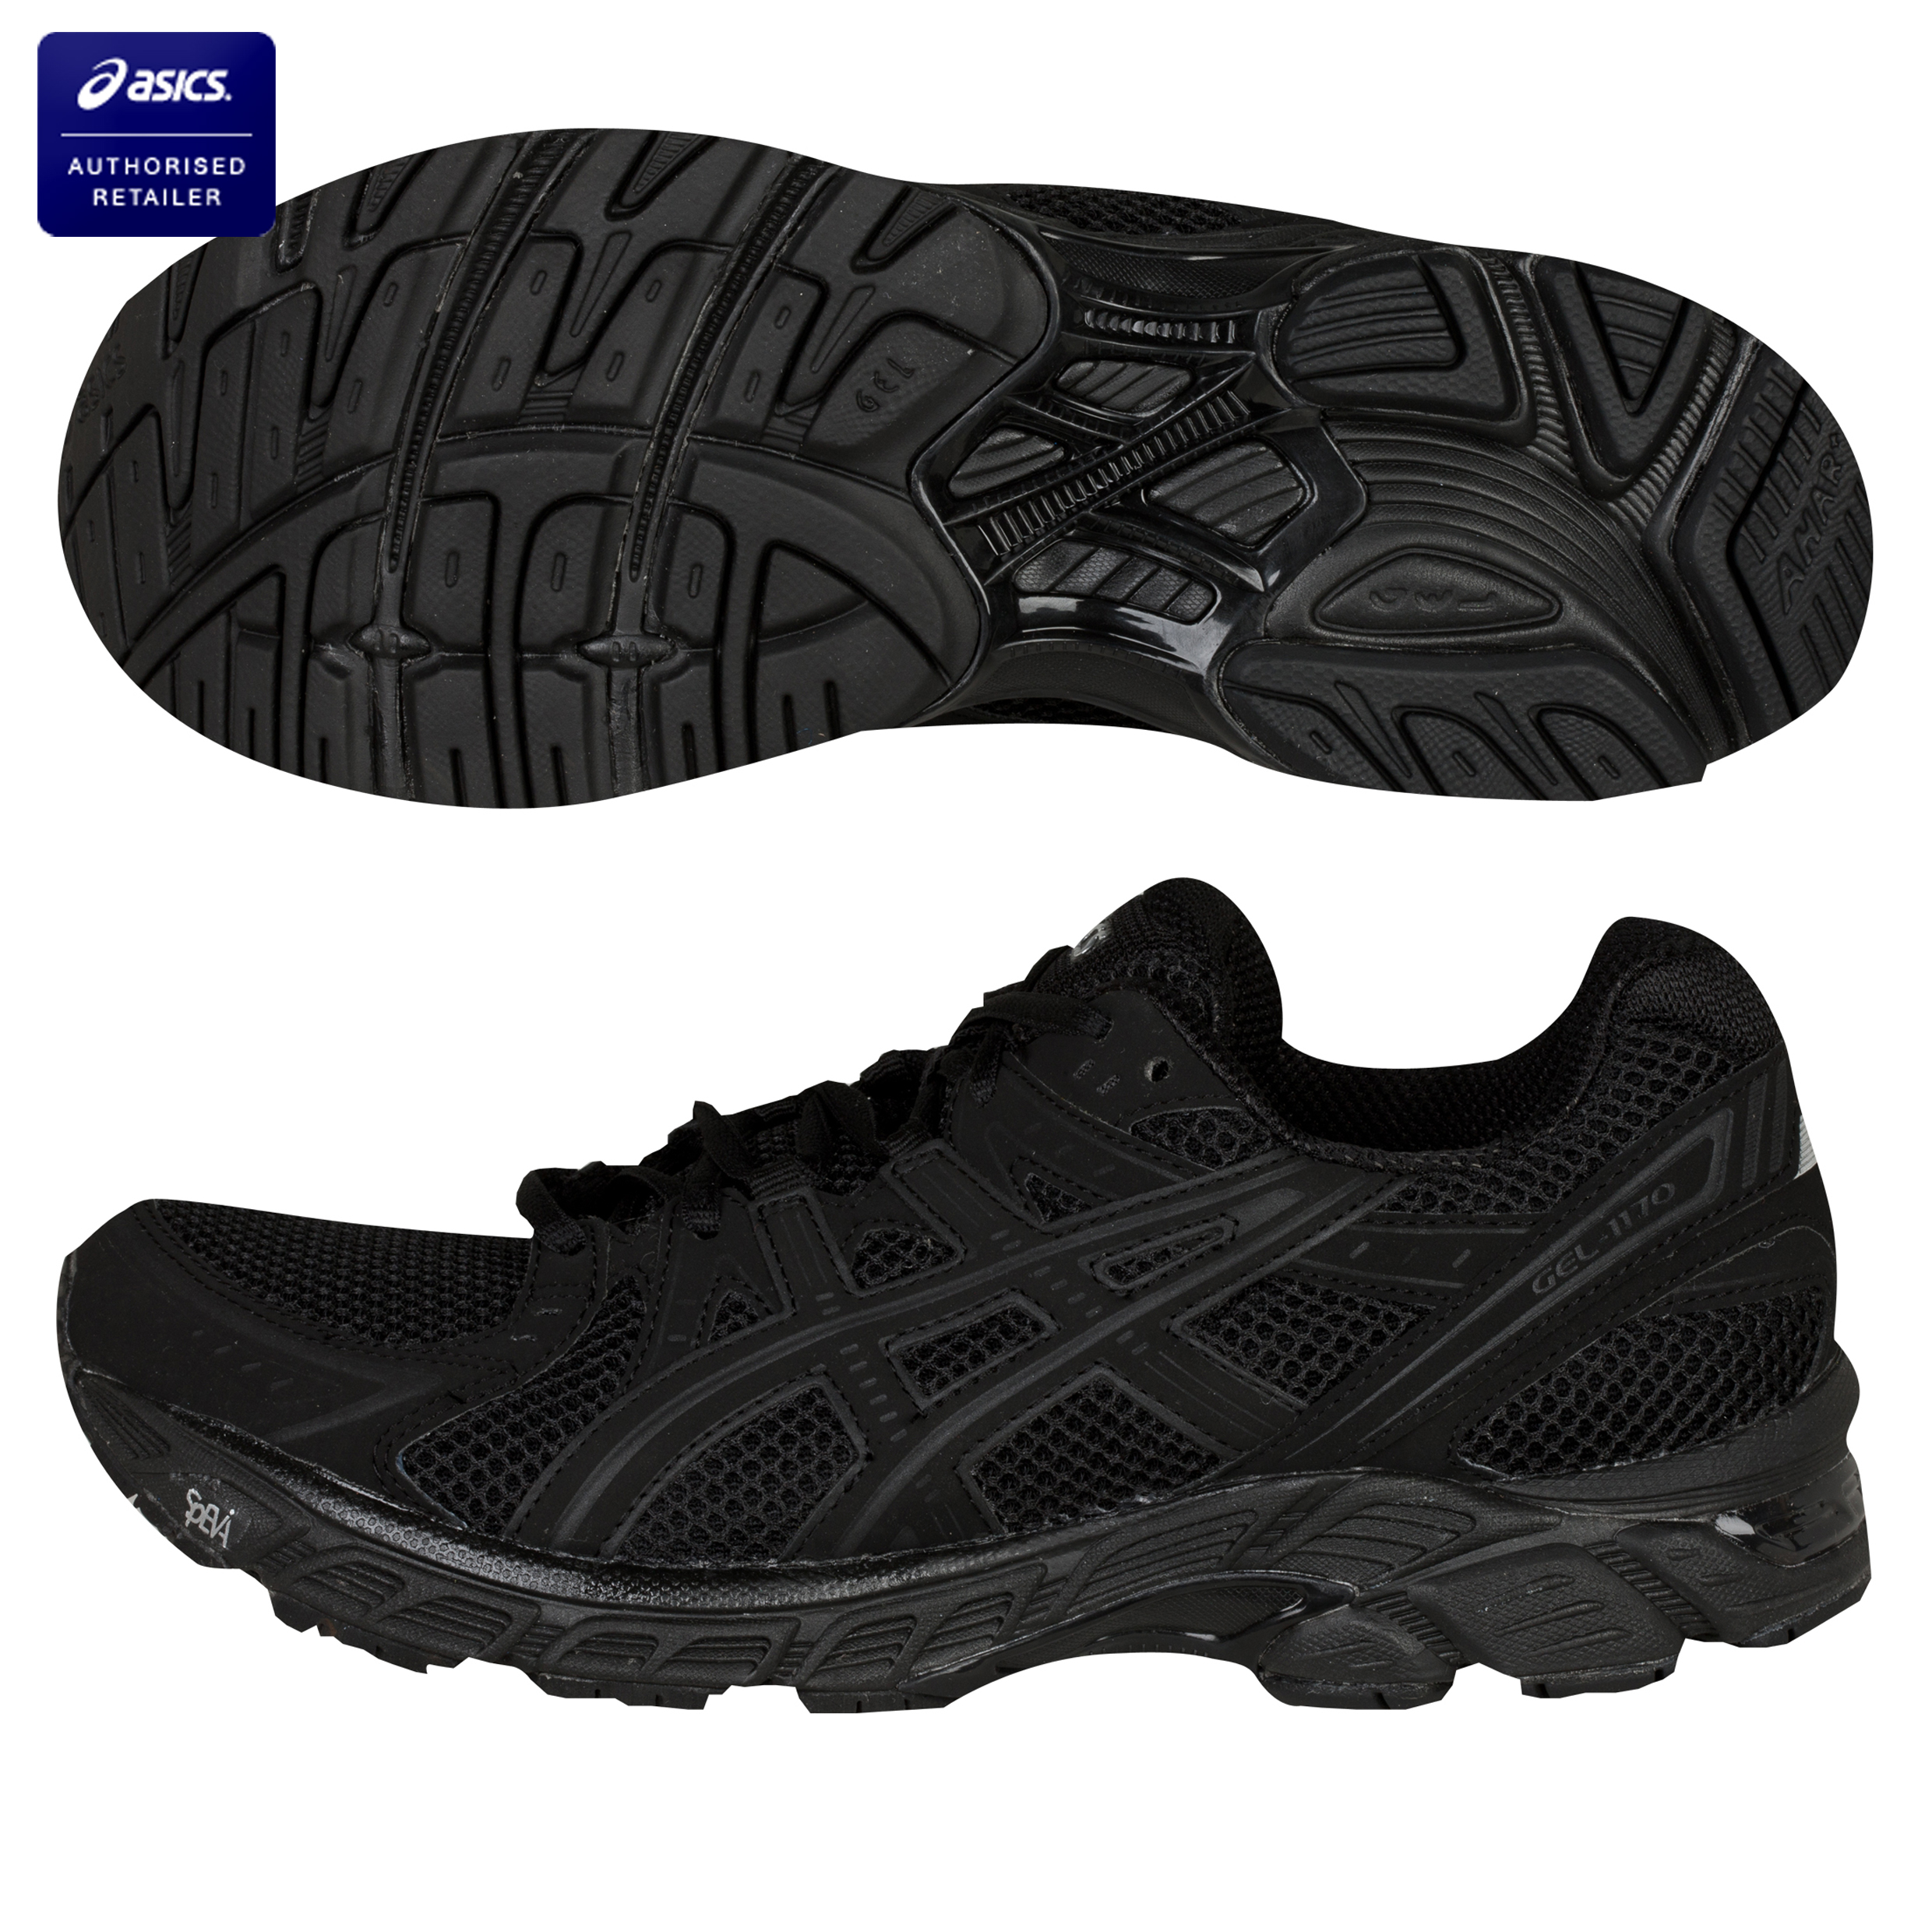 Asics Gel-1170 Trainers - Black/Onyx/Graphite  - Womens